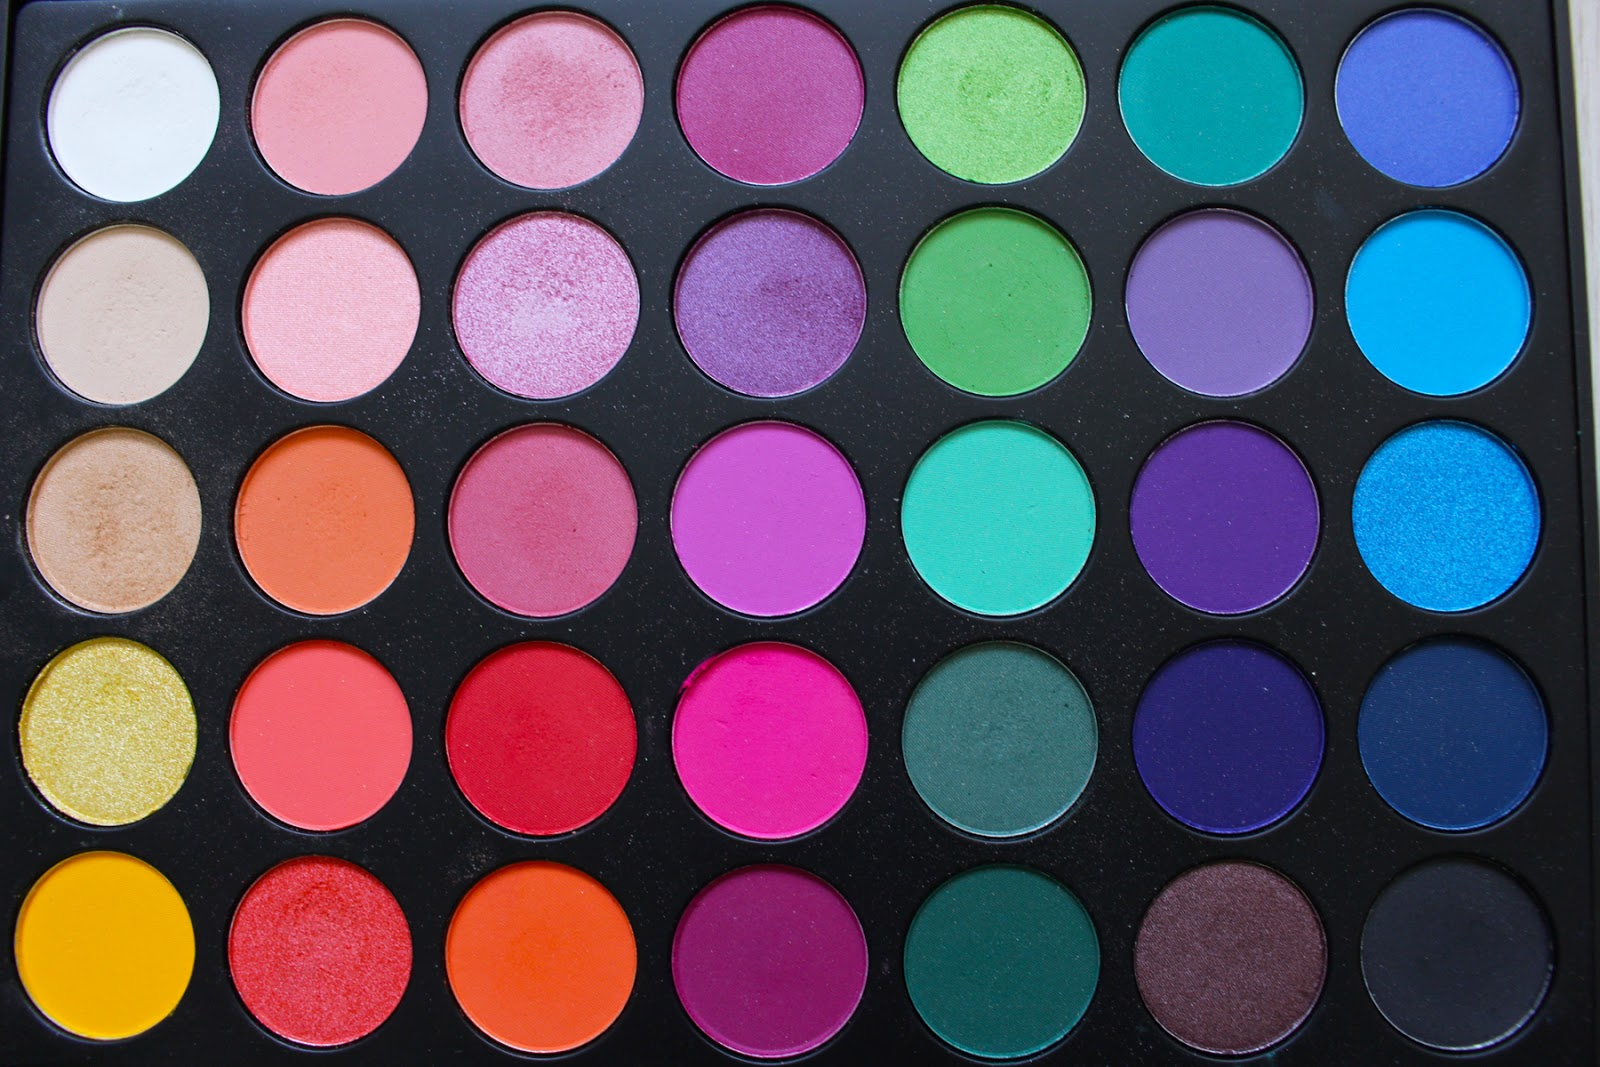 morphe brushes 35b palette